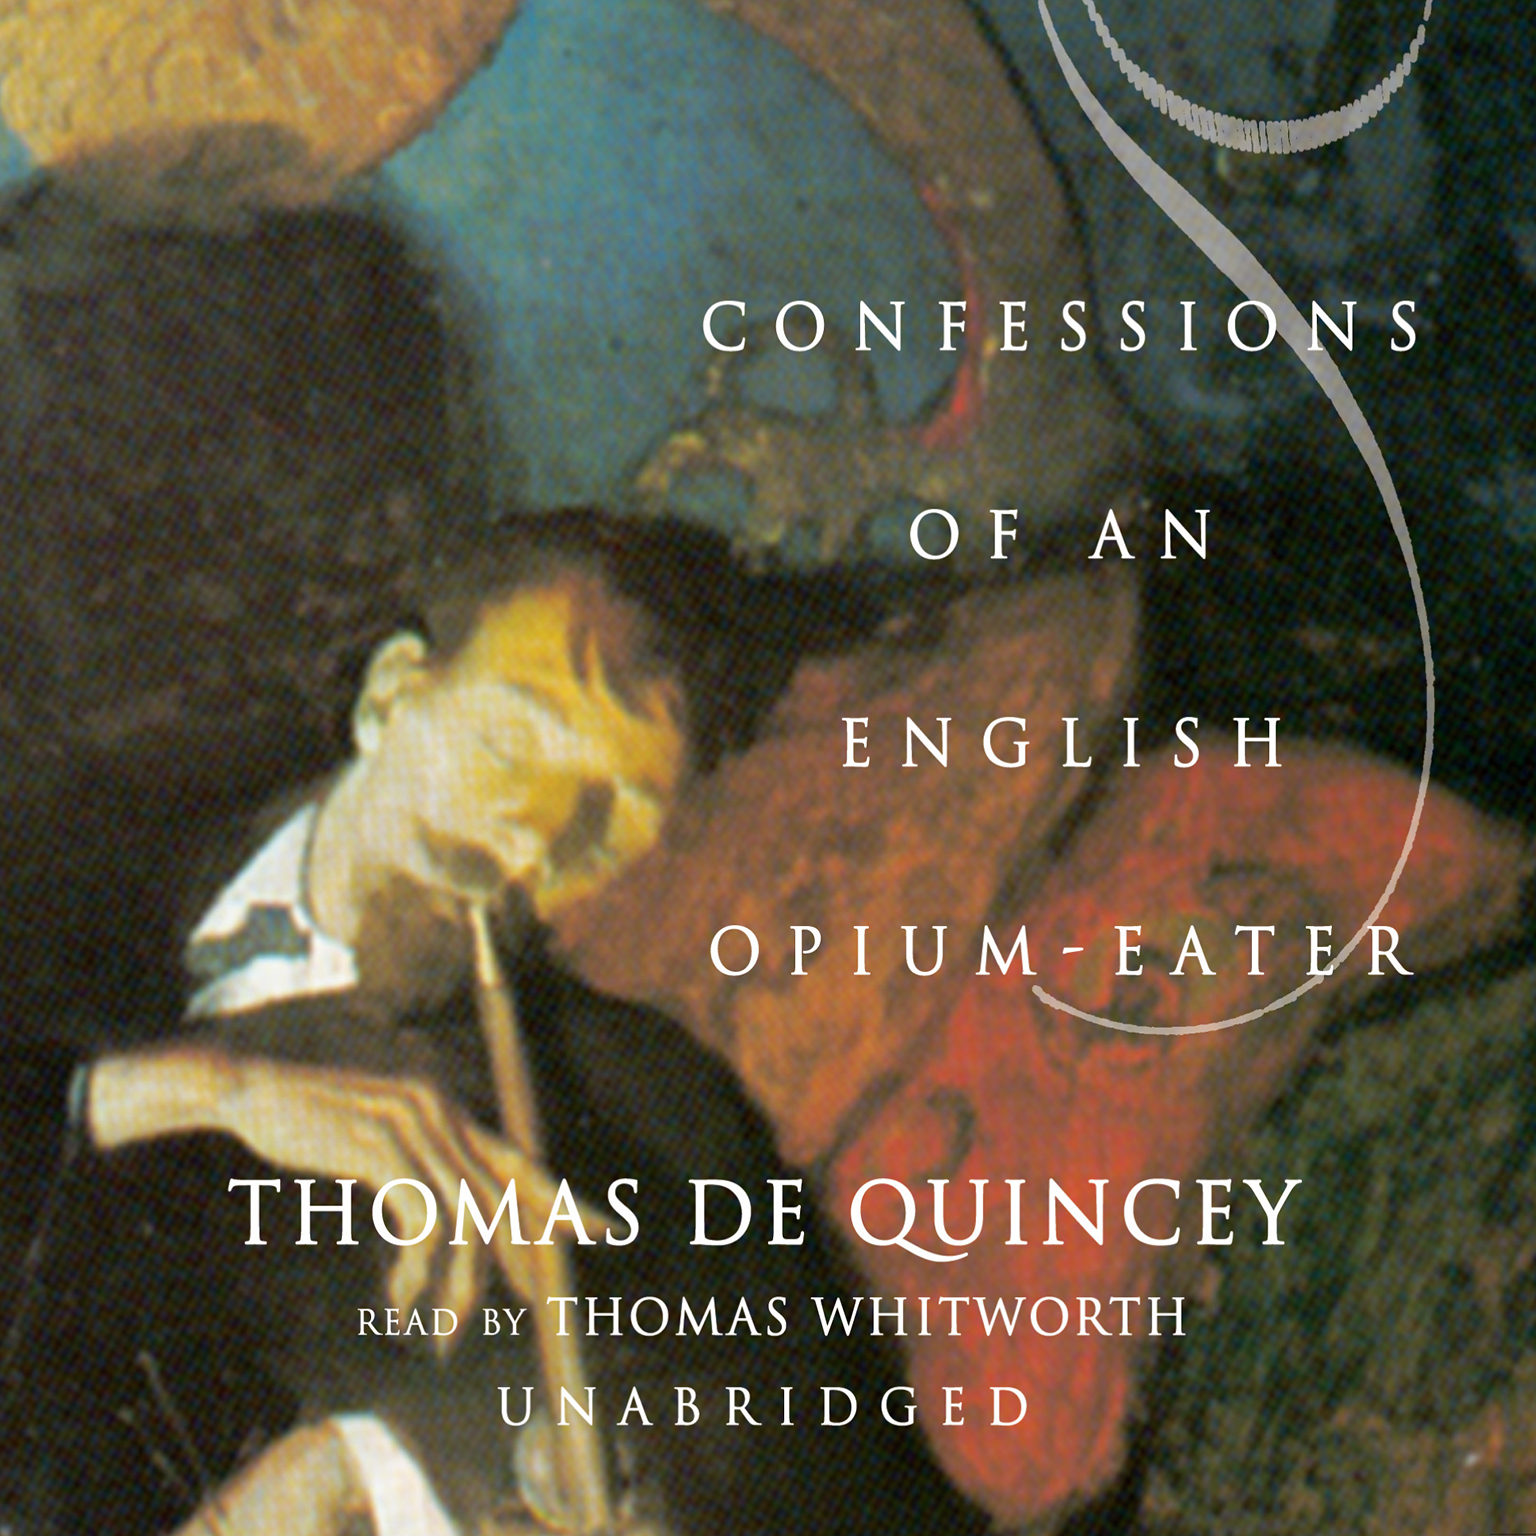 Printable Confessions of an English Opium-Eater Audiobook Cover Art